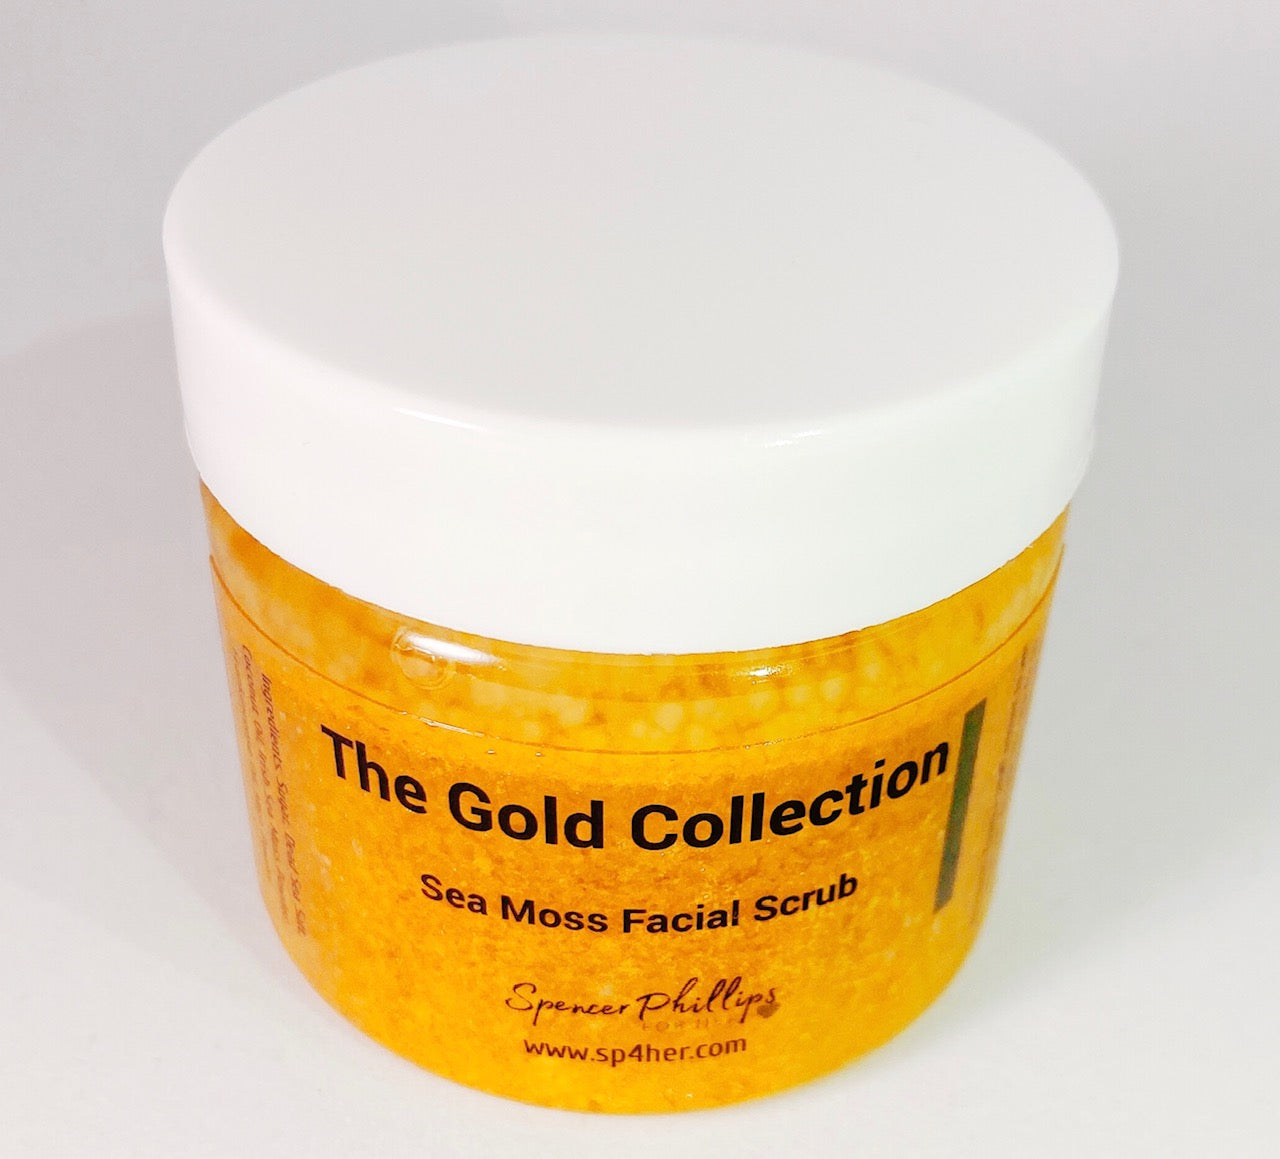 Golden Sea Moss Facial Scrub